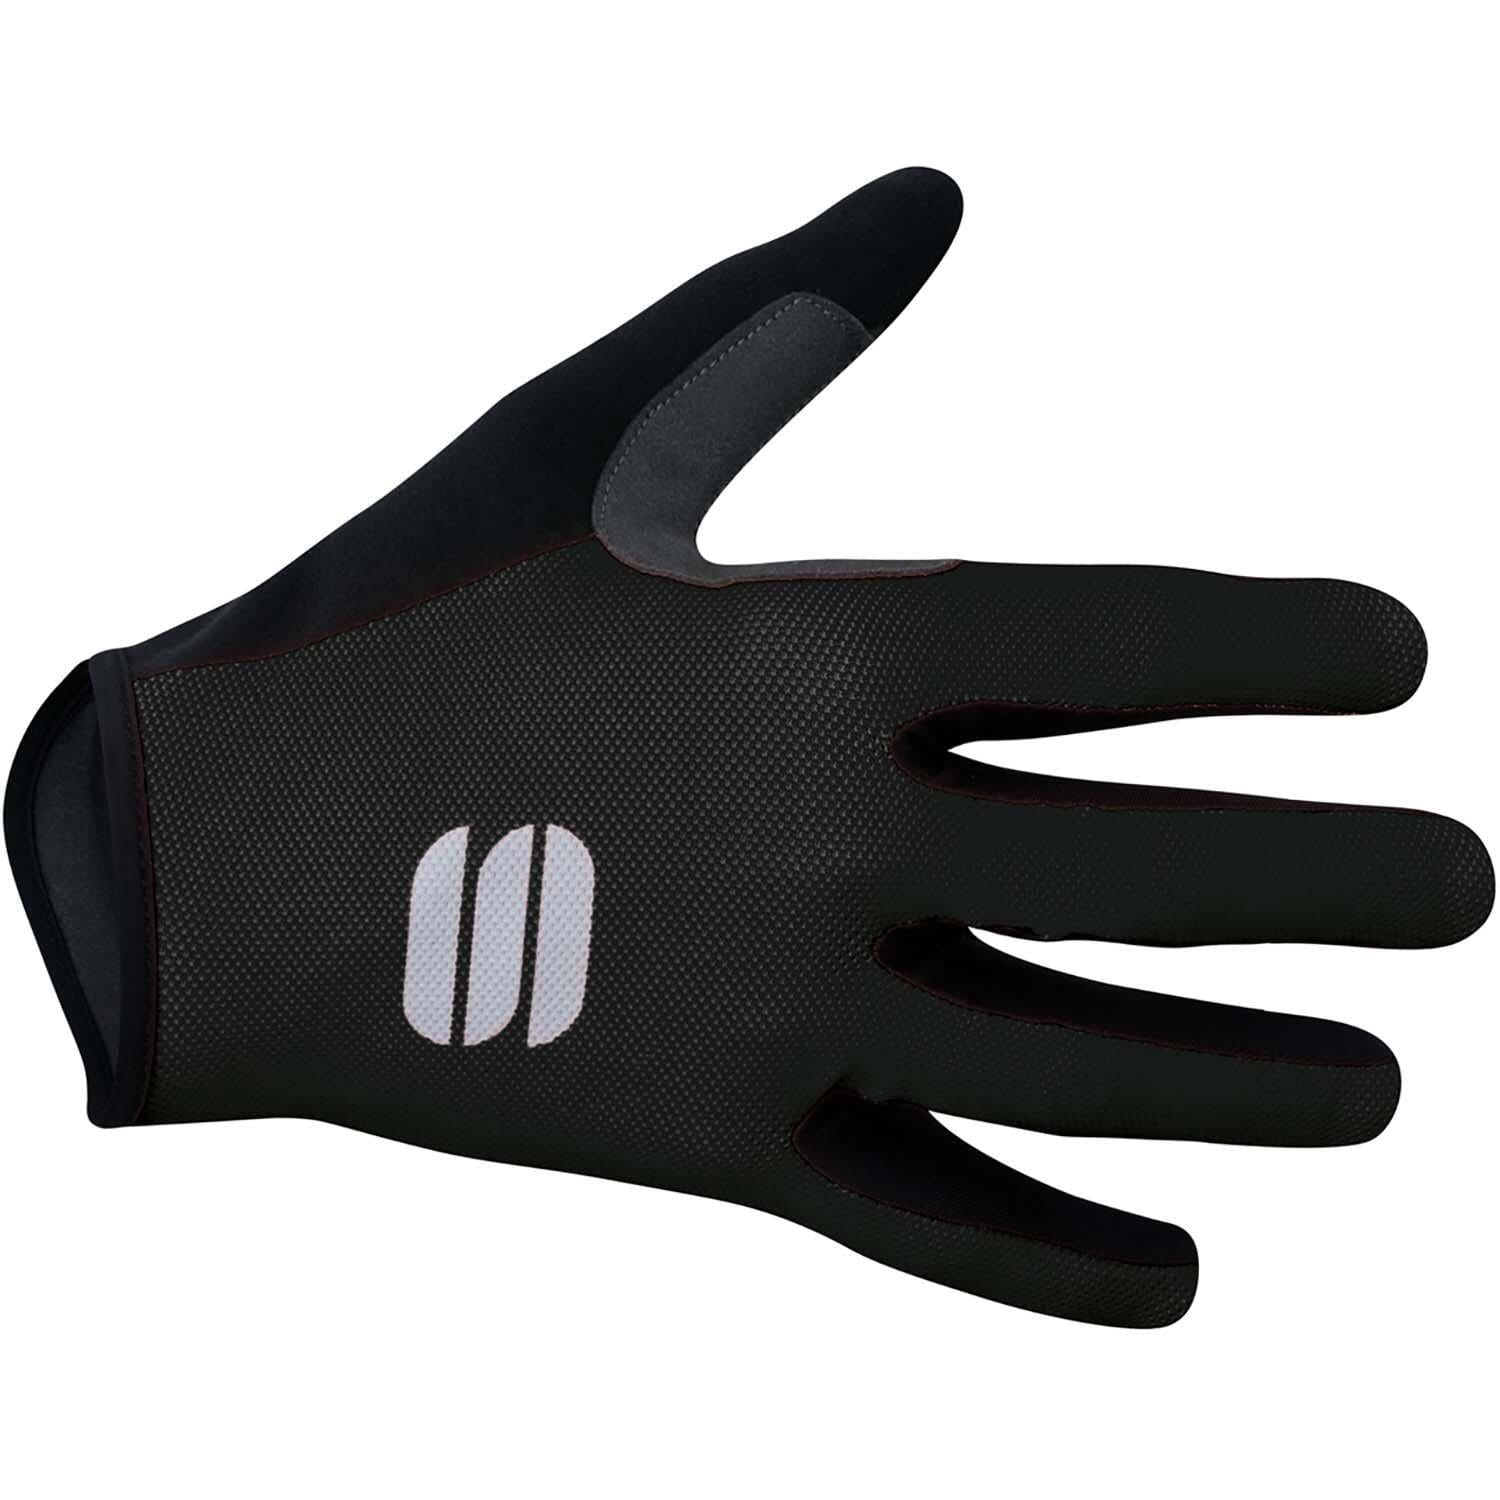 Sportful-Sportful Full Grip Gloves-Black-XS-SF200470021-saddleback-elite-performance-cycling